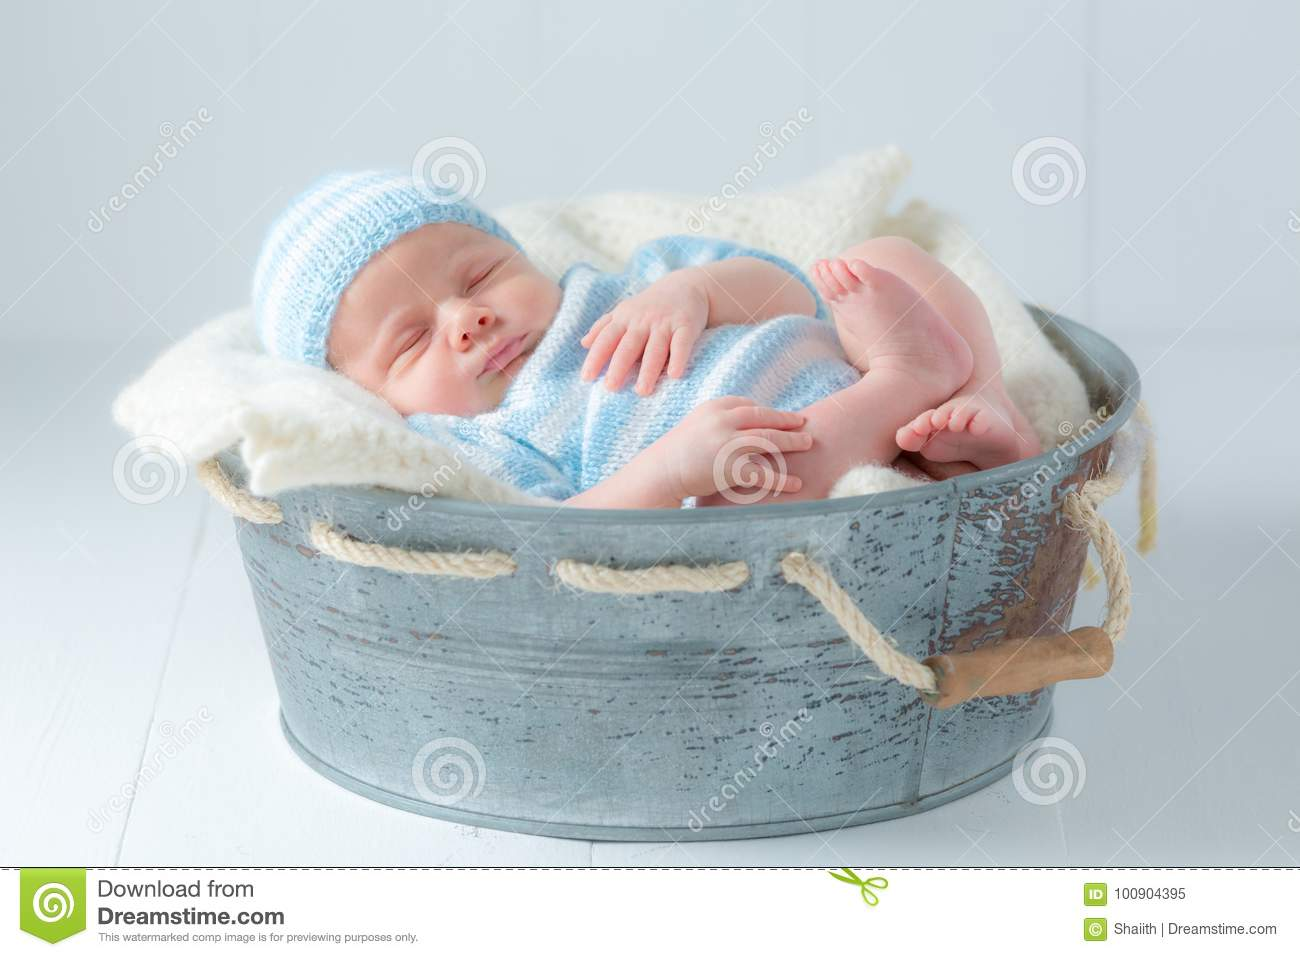 Sweet Newborn Baby Sleeping In Little Bath Stock Image - Image of ...